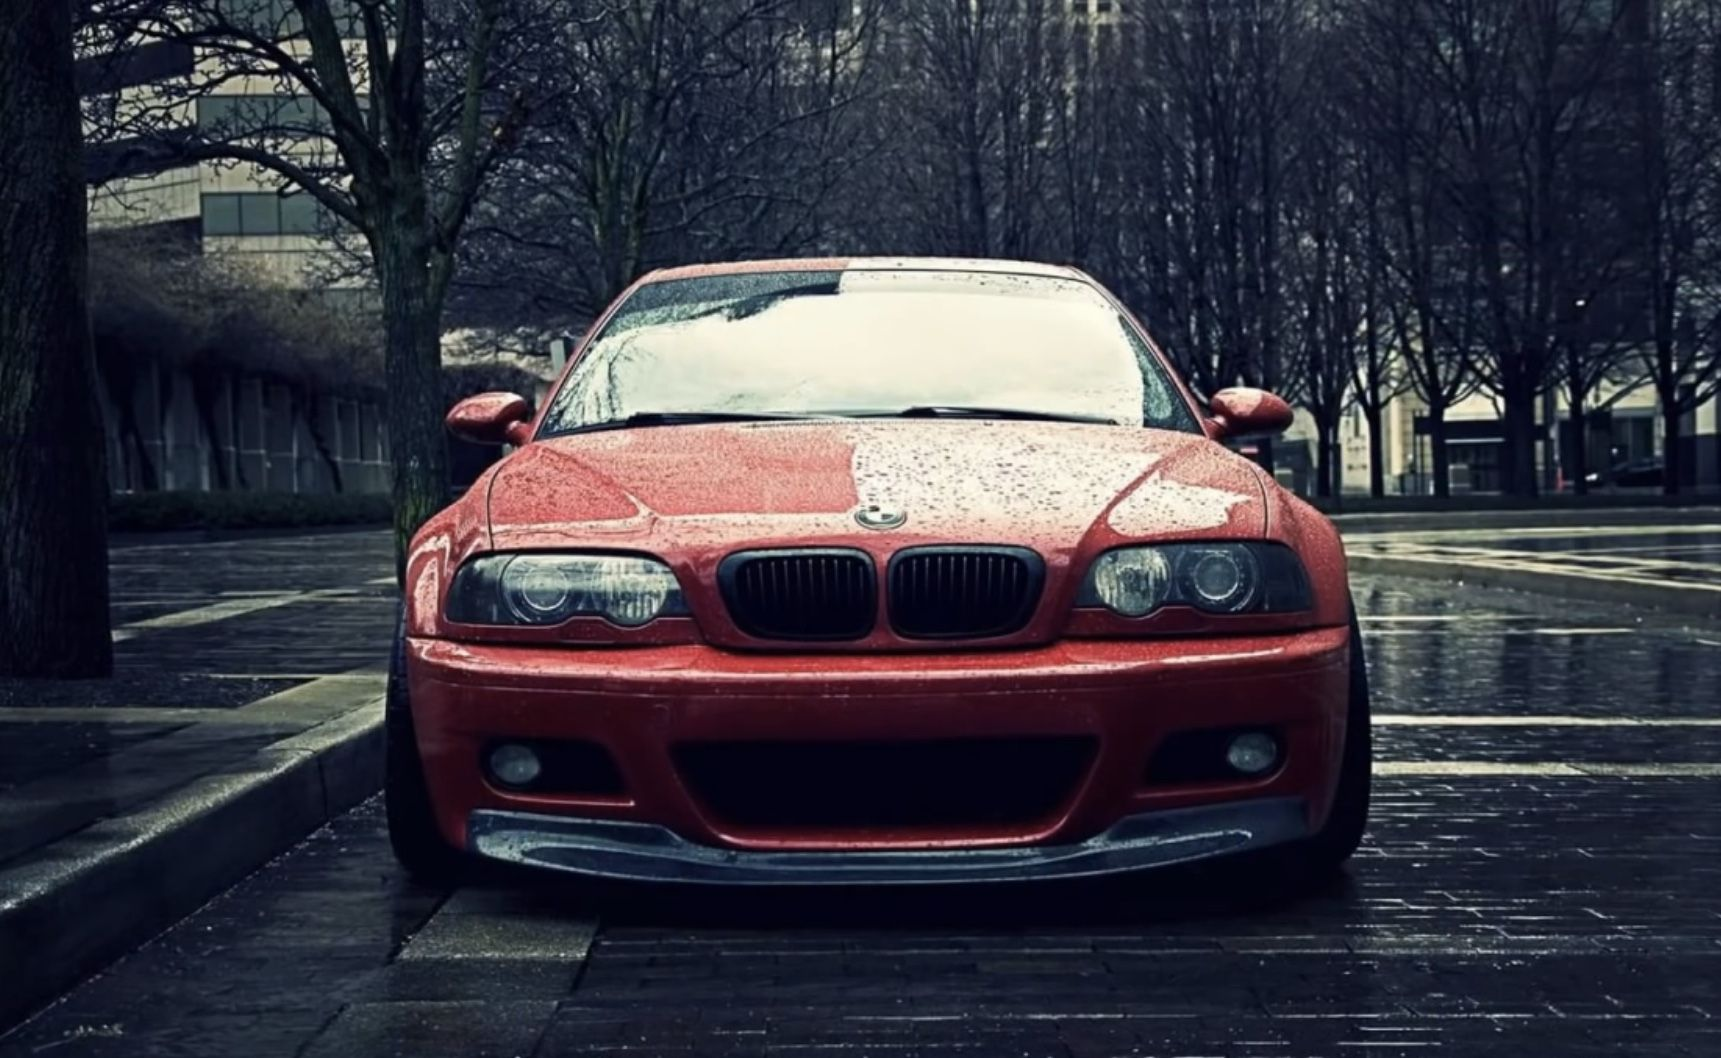 Pin By Daddy Smith On Bimmer Mods With Images Bmw M3 Bmw Cars